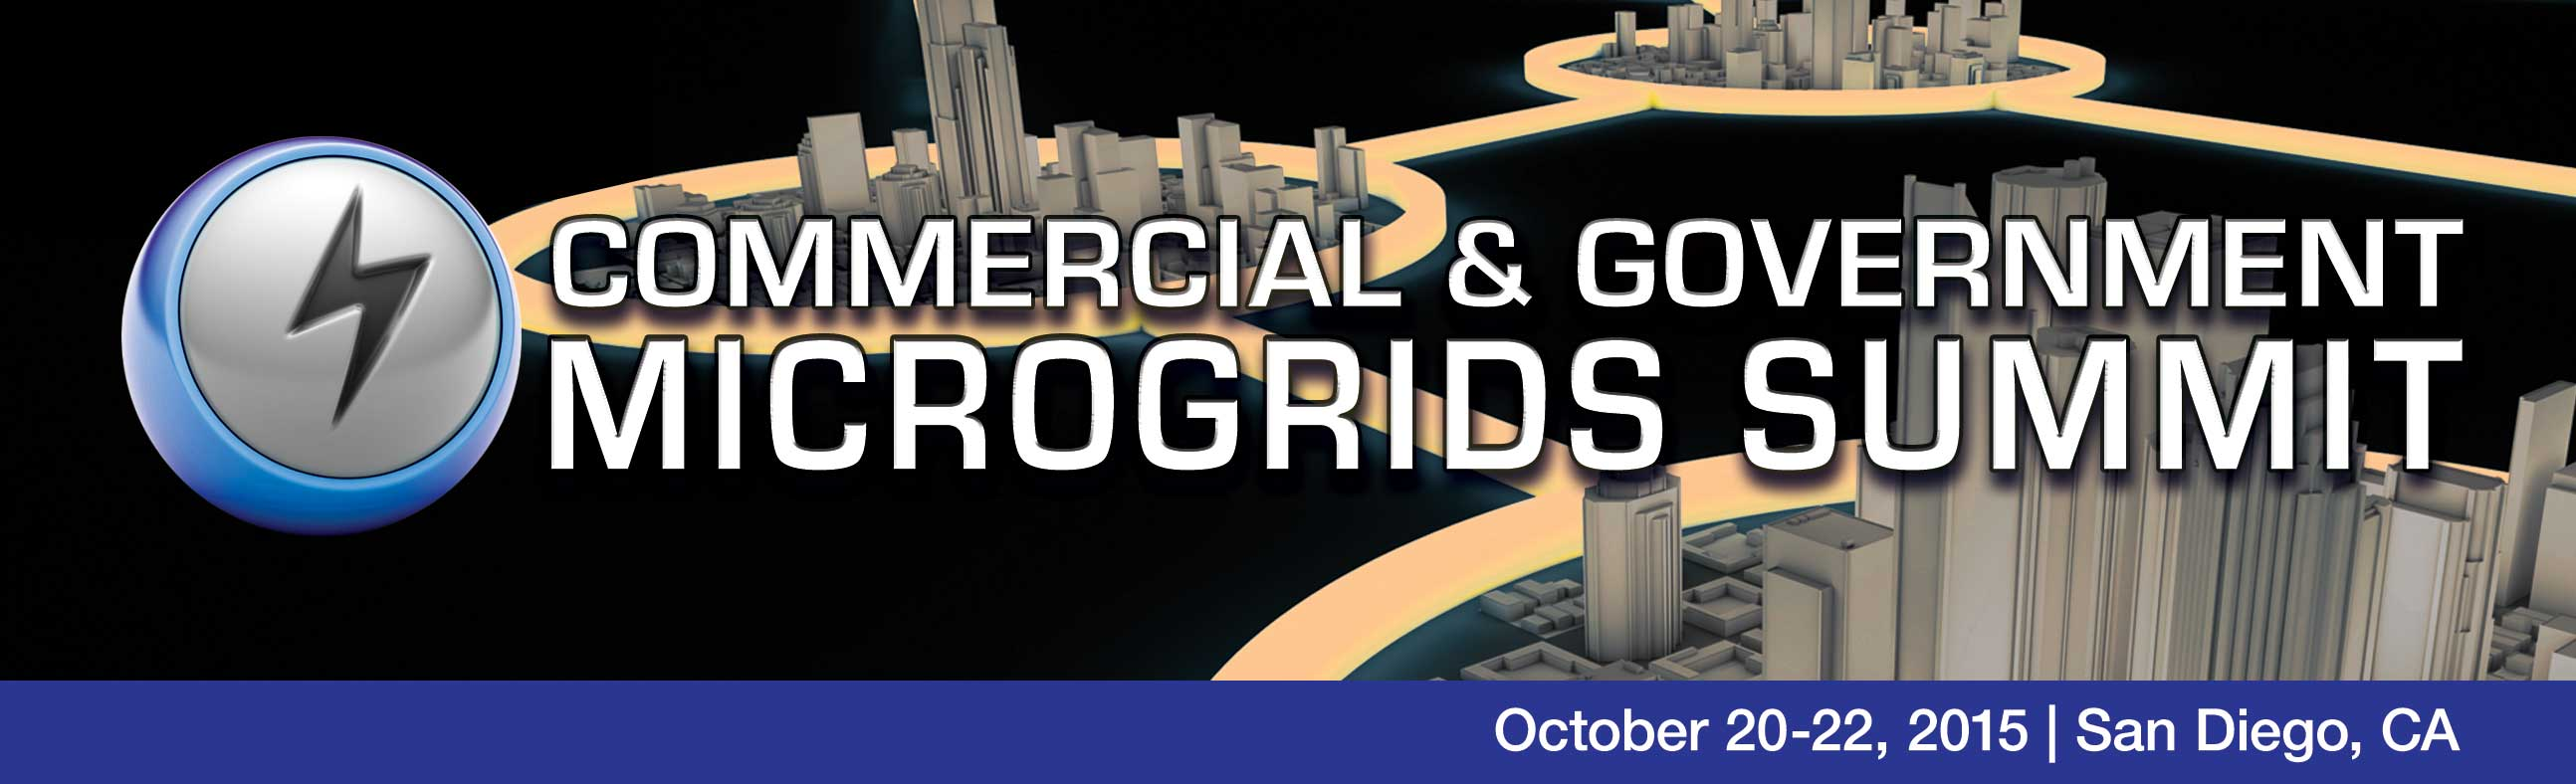 COMMERCIAL & GOVERMENT MICROGRIDS SUMMIT - October 20-22, 2015 | San Diego, CA